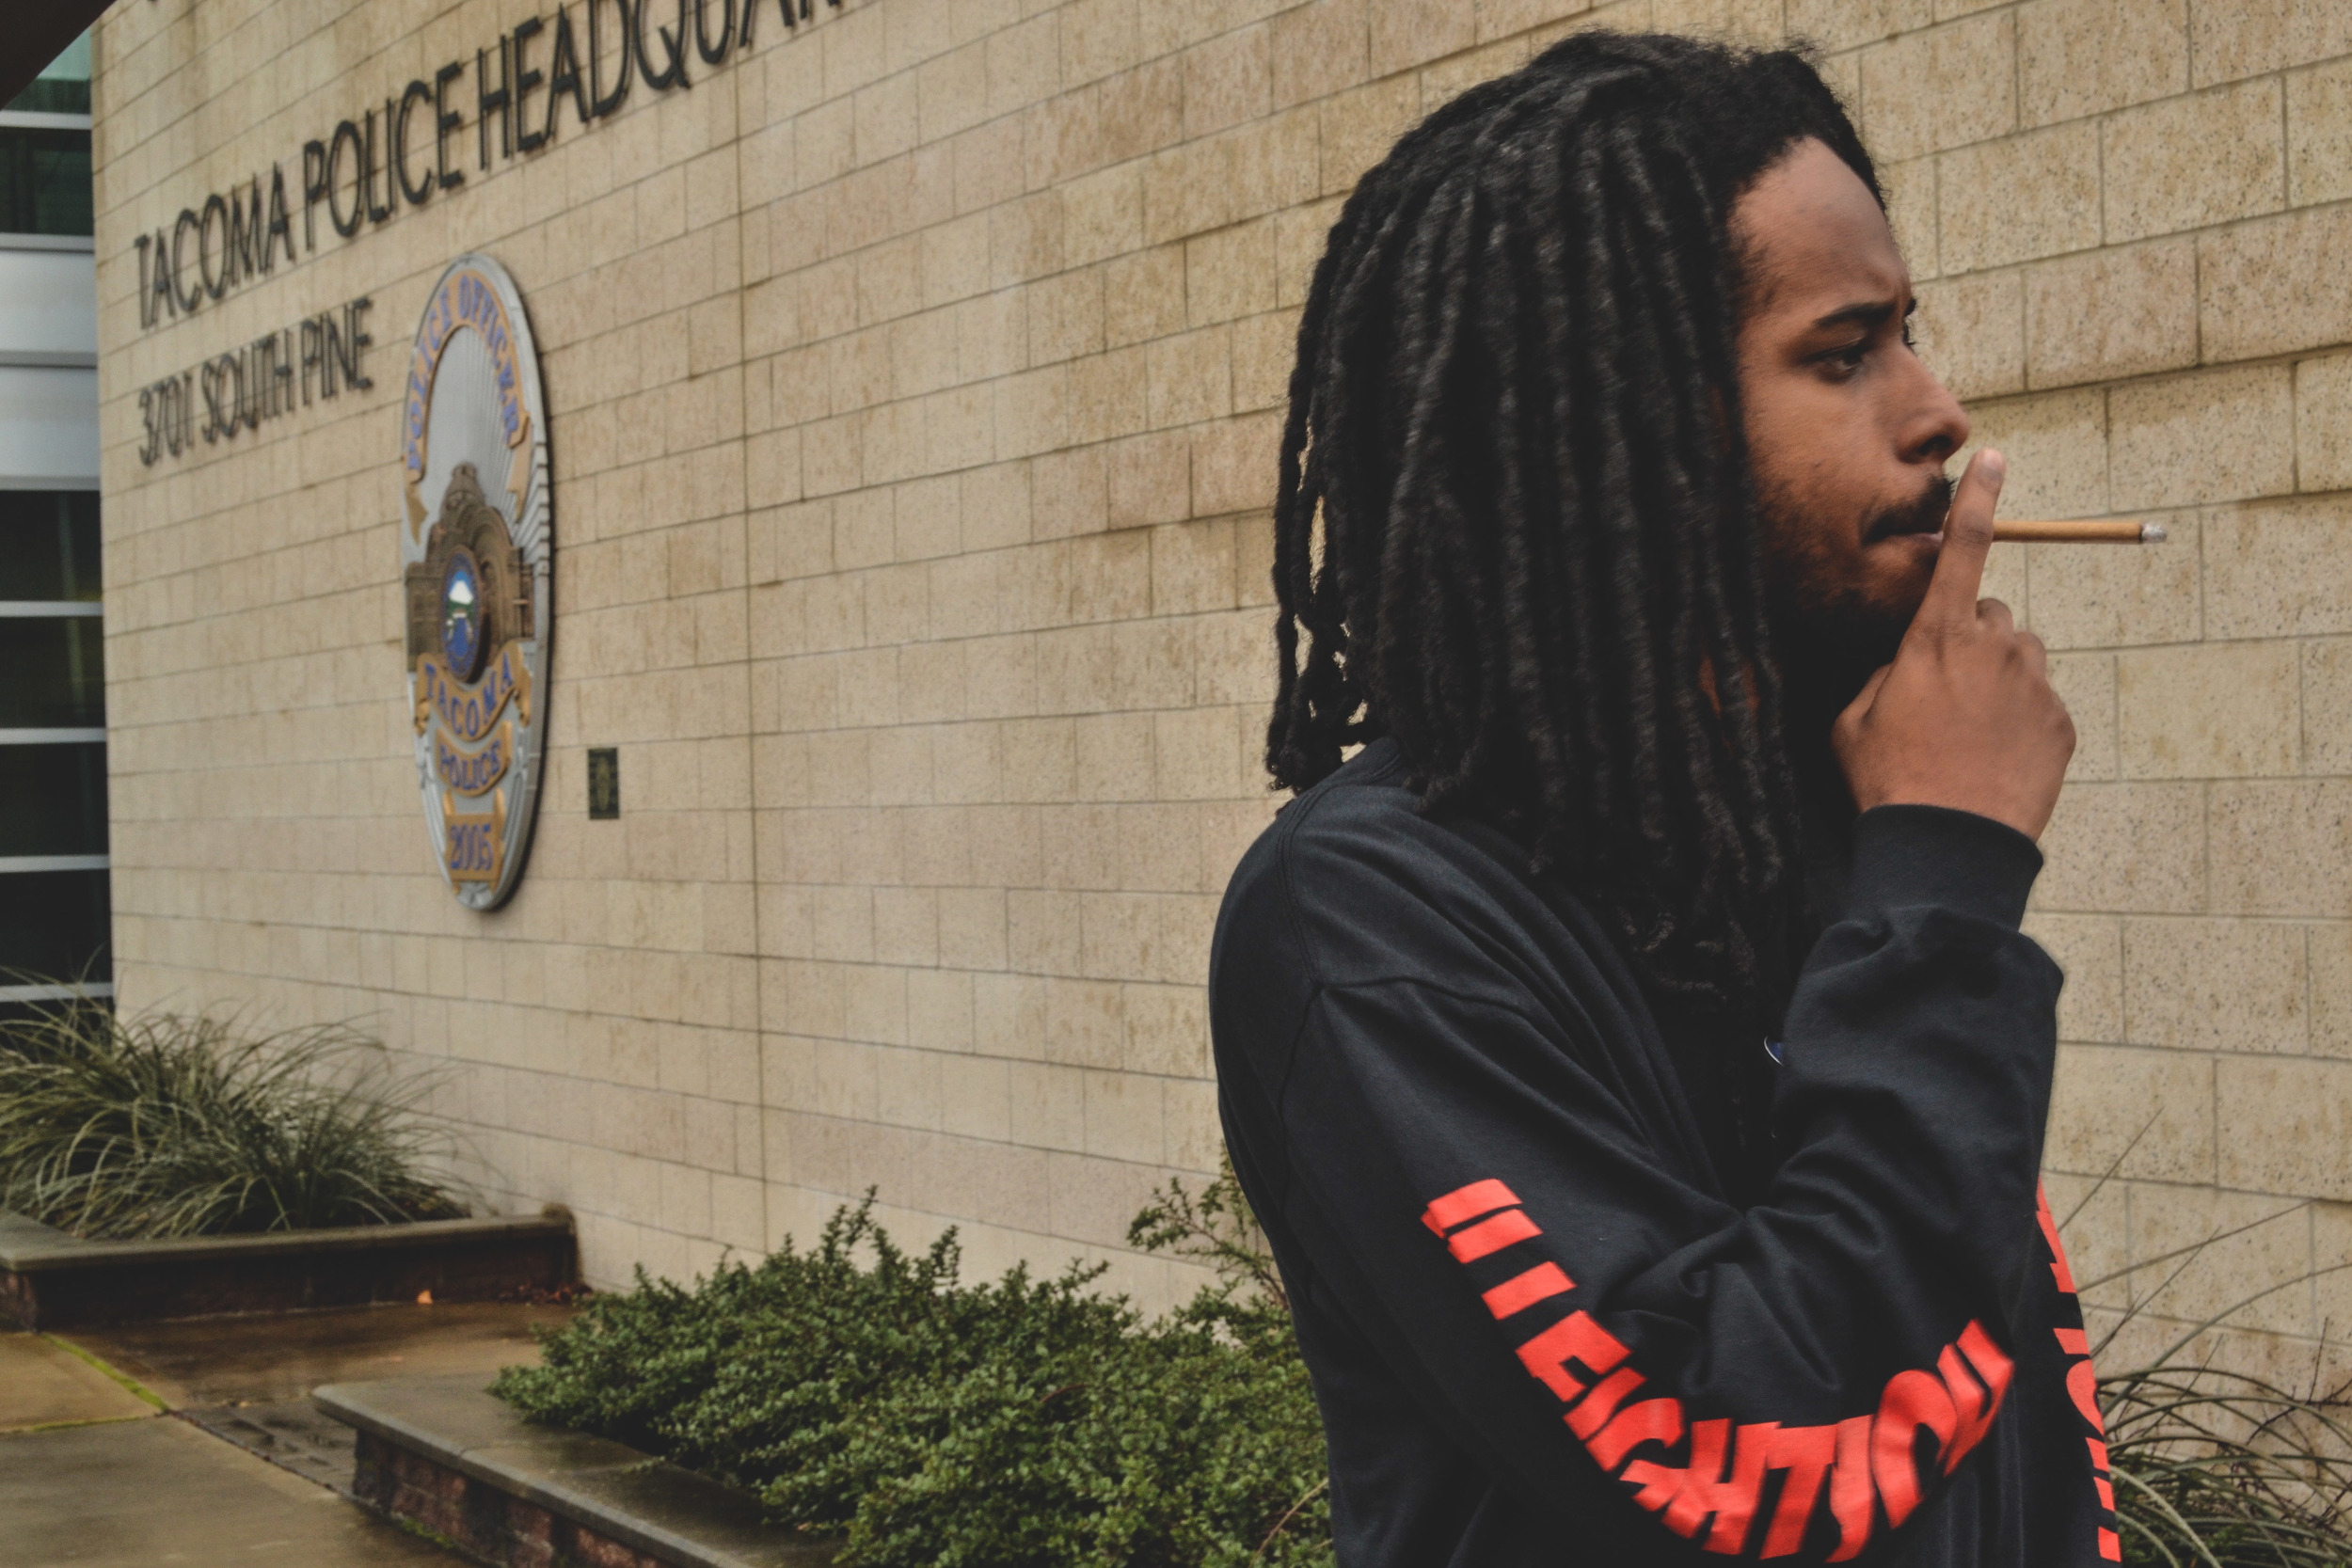 Pictured: KhrisPKream in originally released IFY x eTc longsleeve smoking LOOOUD. Sound the sirens!!   NOTE: The L/S pictured above is no longer available for purchase or pre-order.